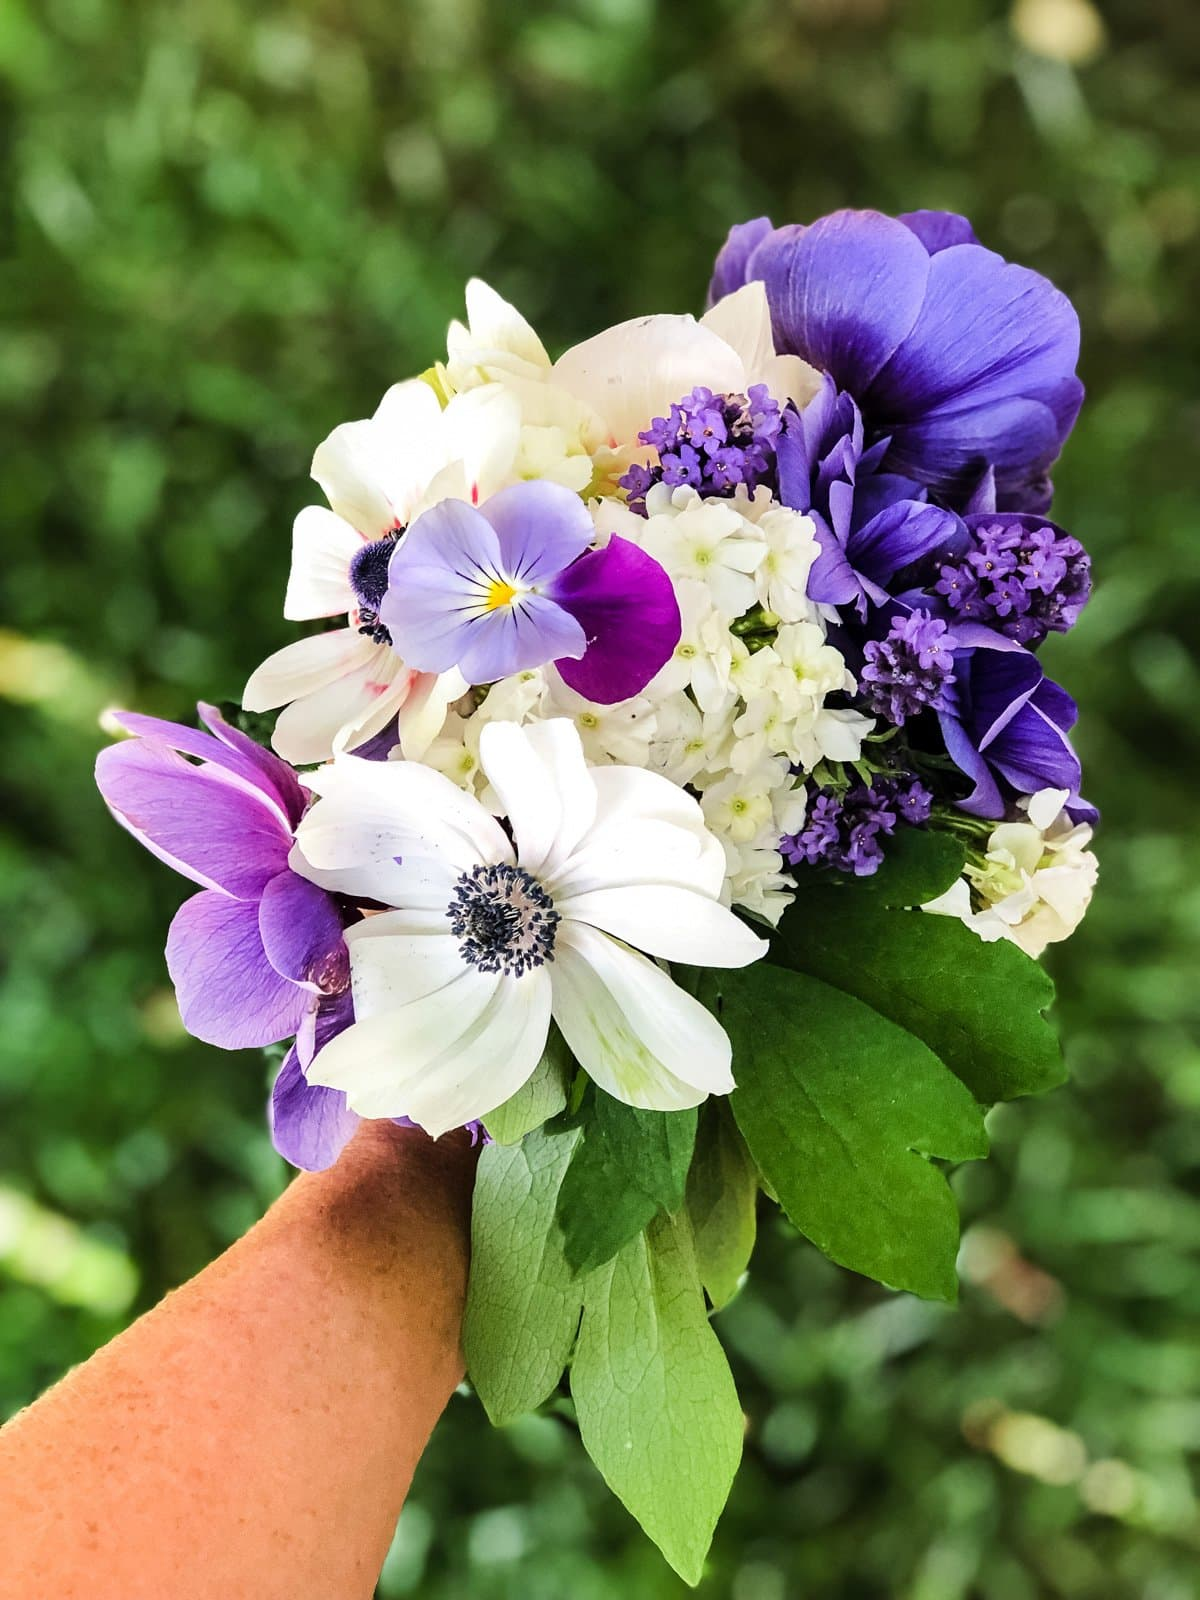 Flowers From My Garden: All the Anemones!